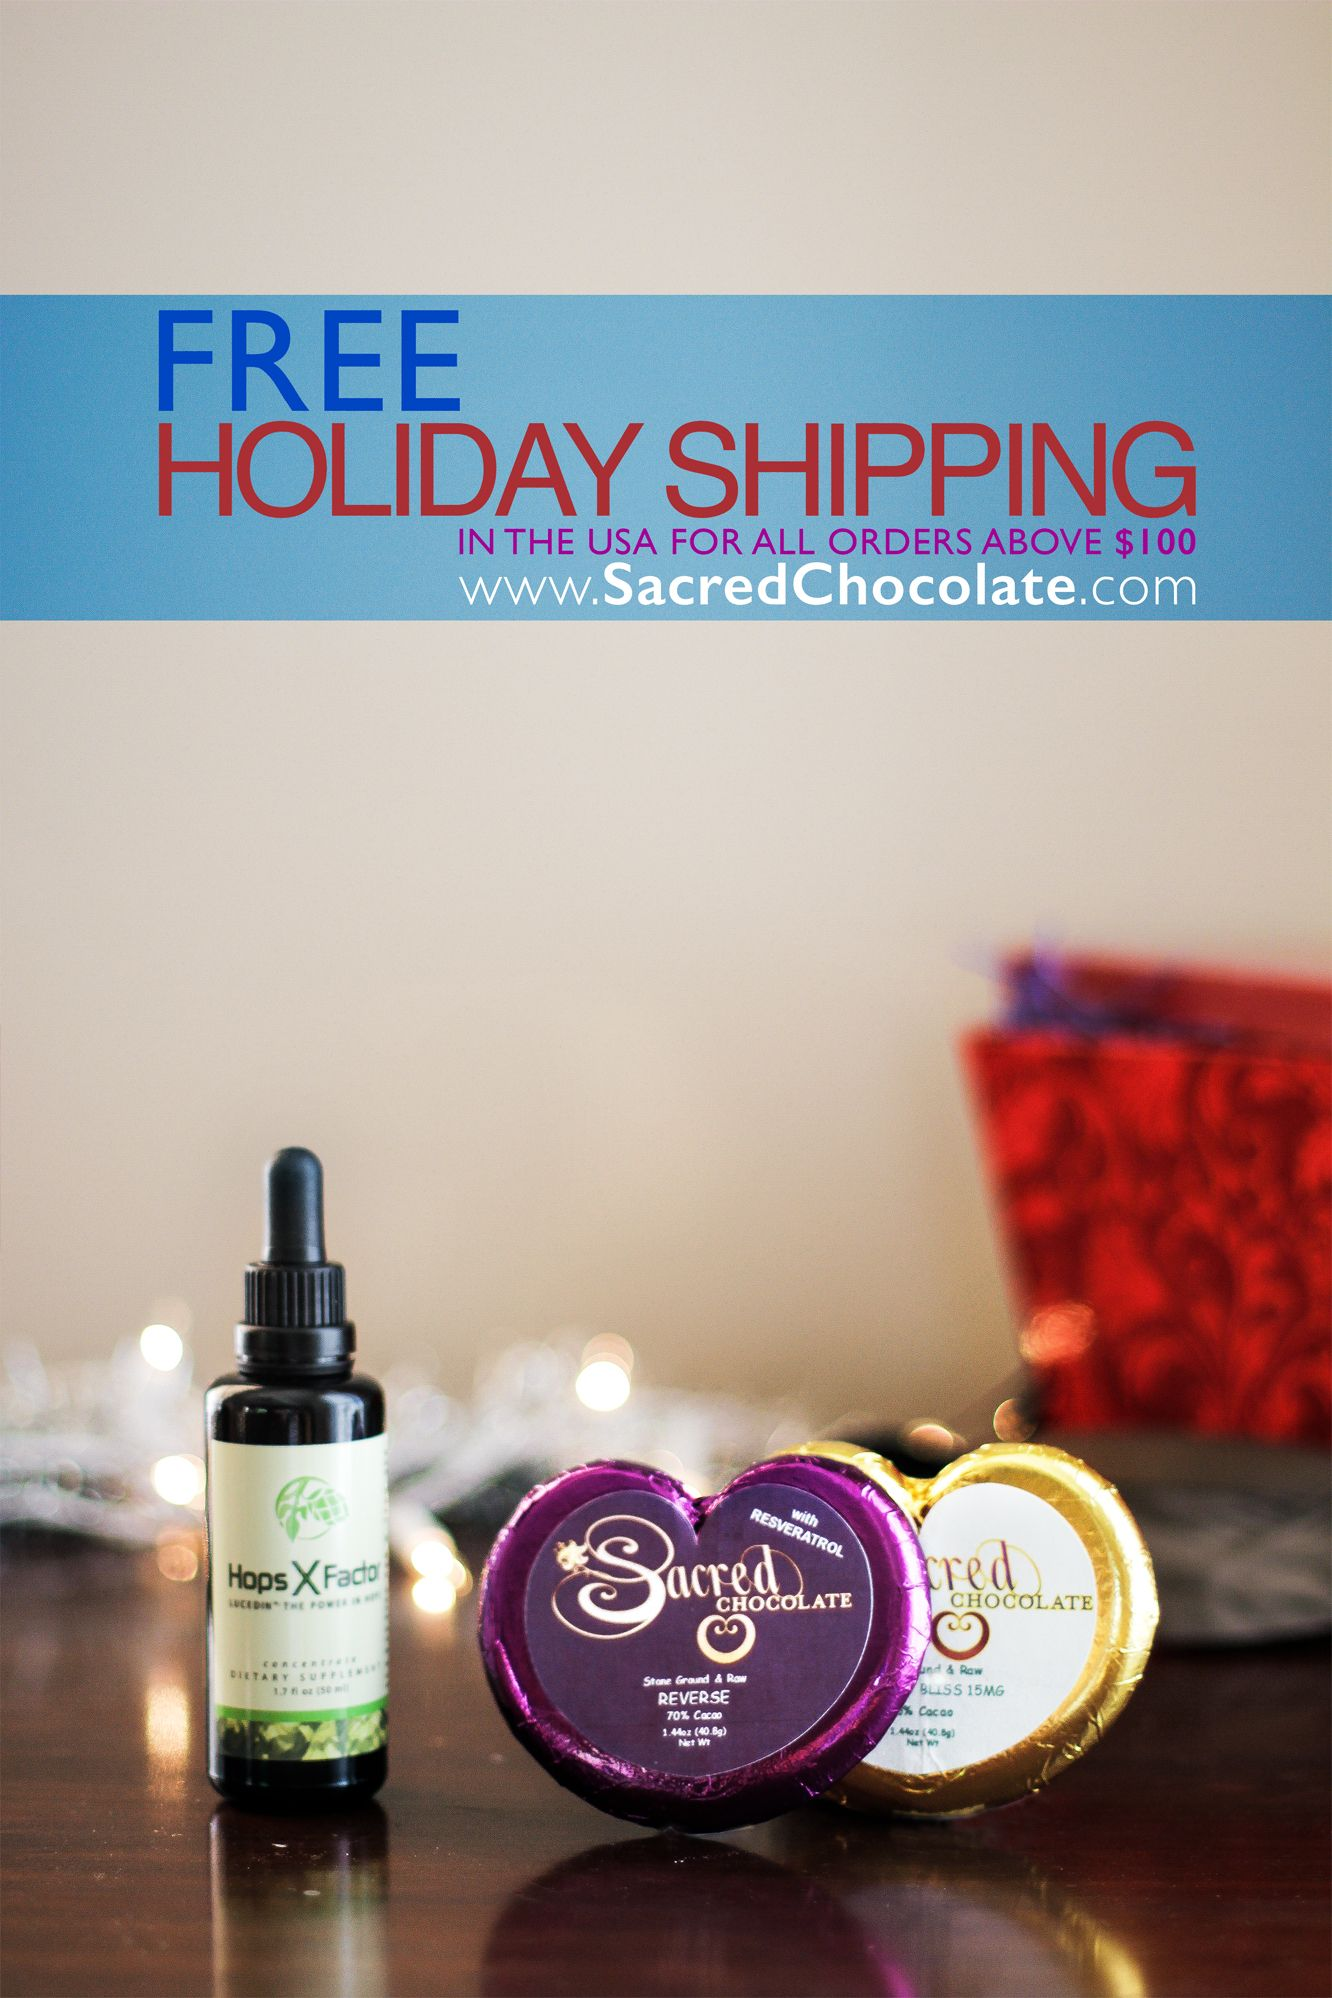 ENJOY 2 weeks of FREE SHIPPING! David Wolfe introduces the New 'REVERSE' Bar: Resveratrol in Sacred Chocolate!